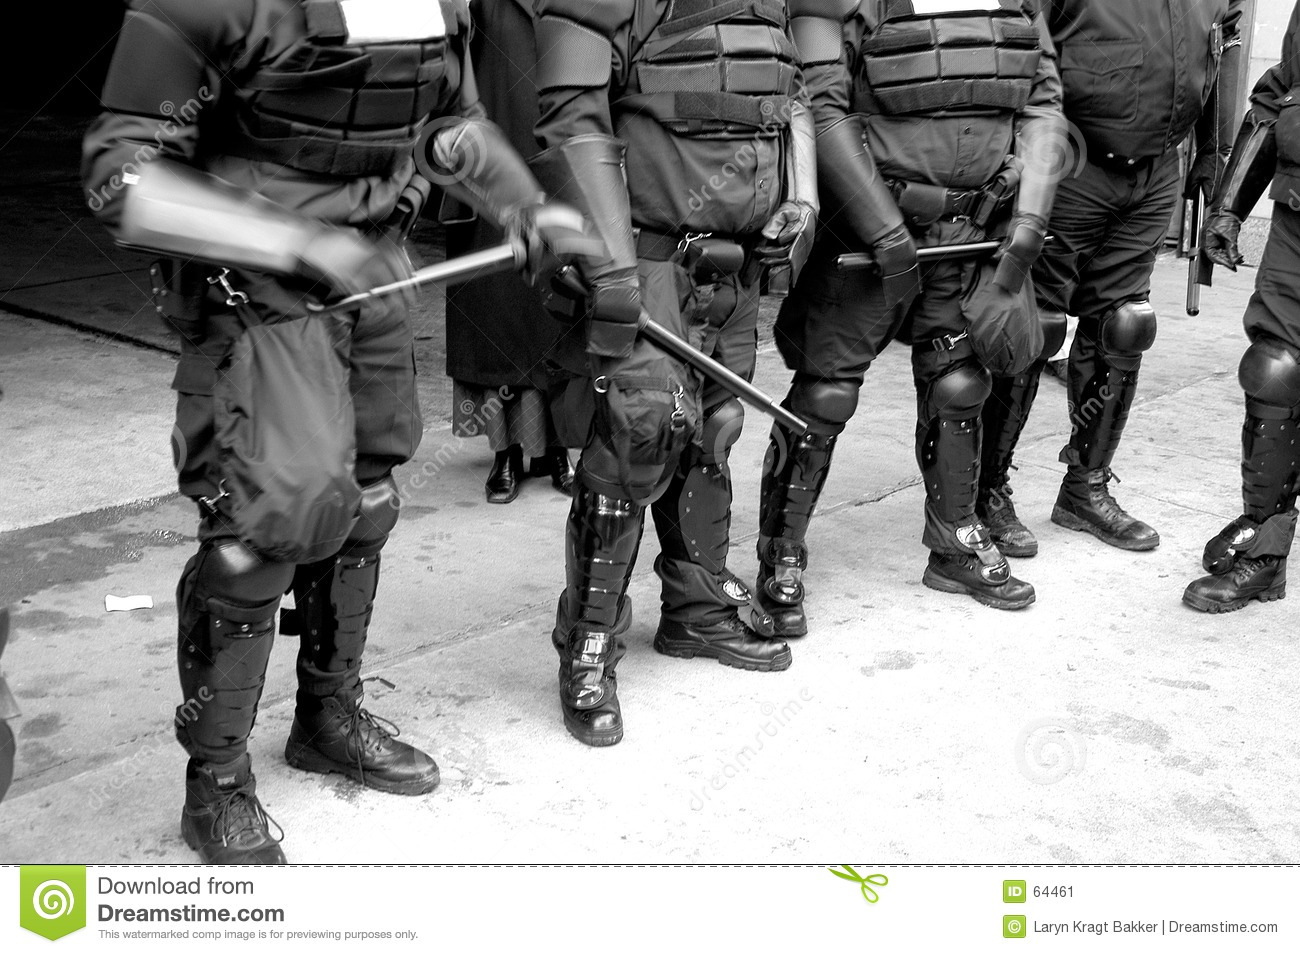 Police bodies in riot gear